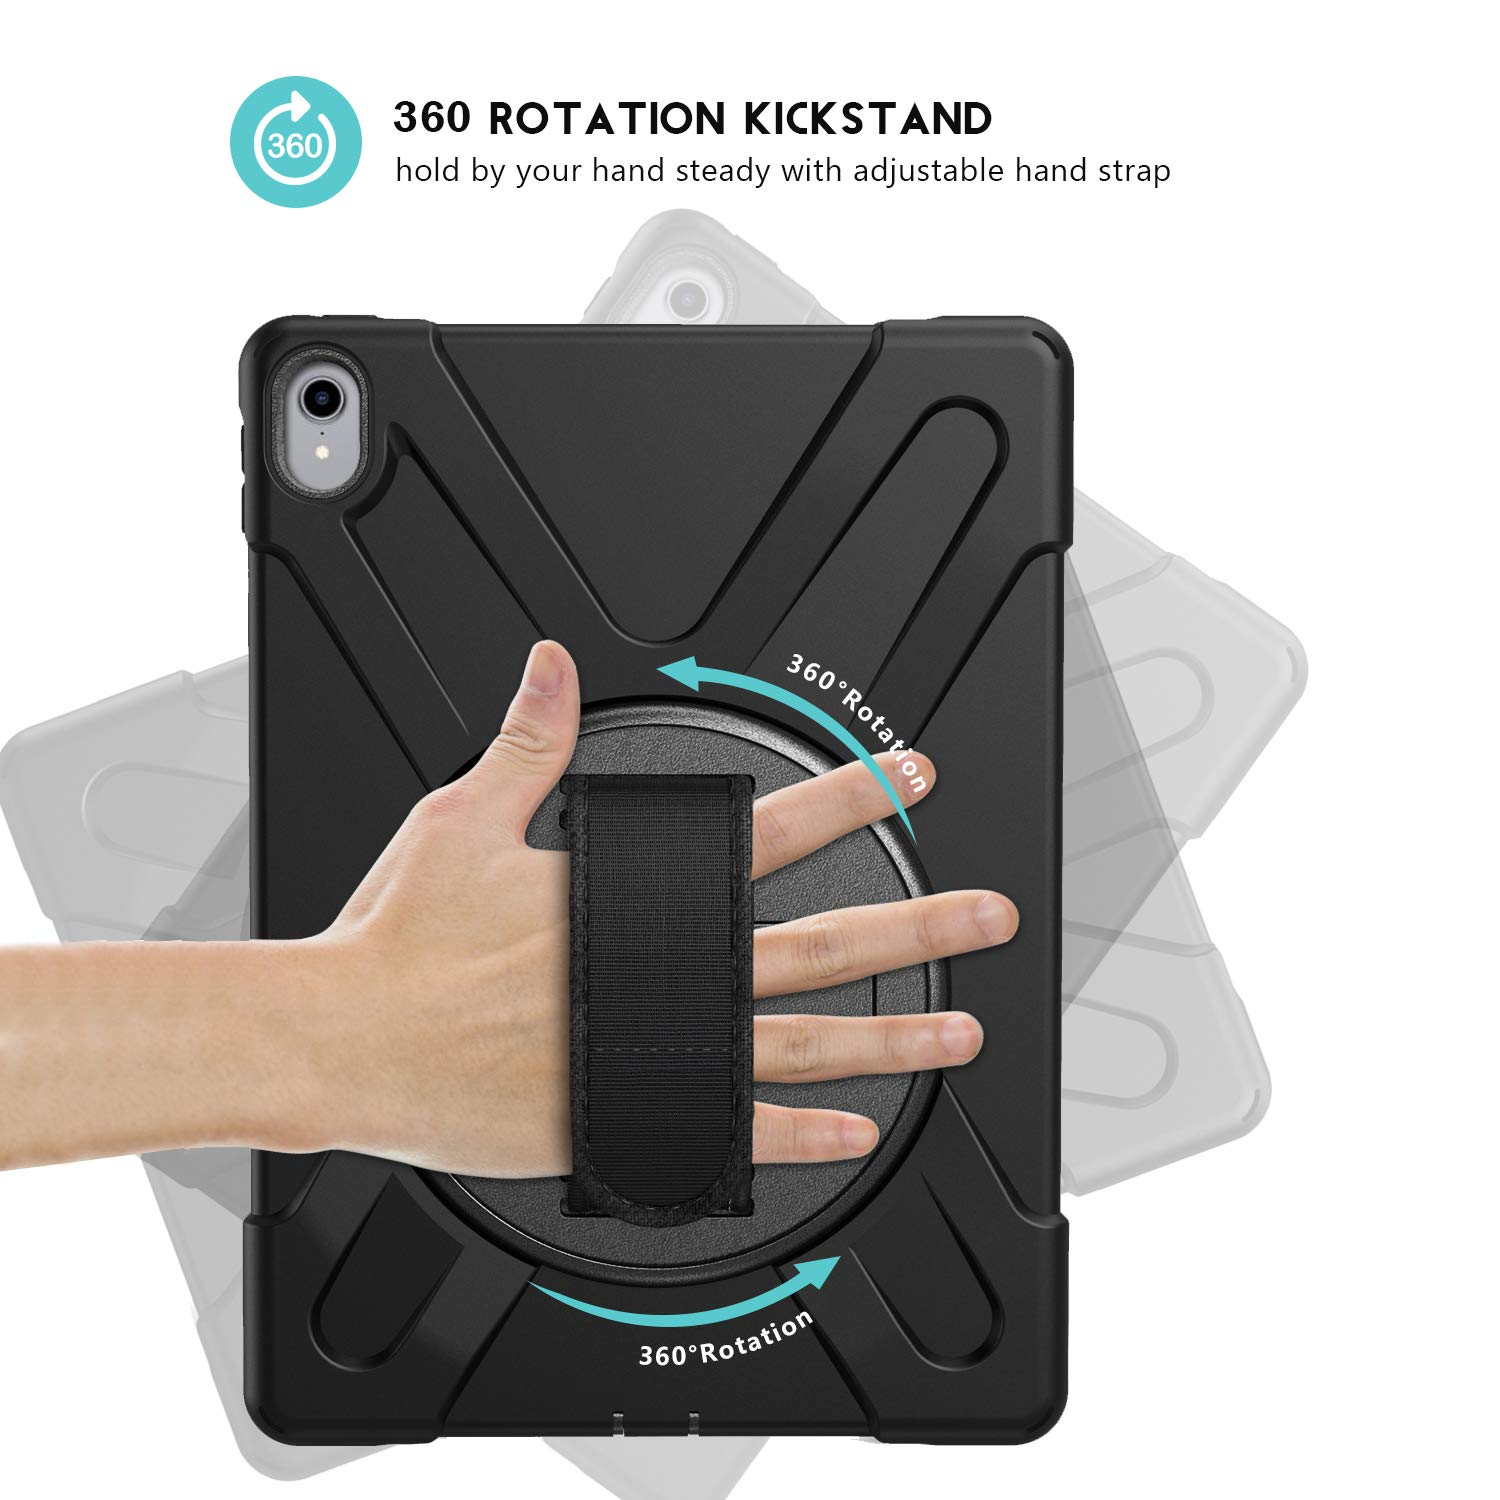 3 in 1 Heavy Duty Shockproof Rugged Case for Apple iPad Pro 11 Inch 2018 Release Black ProCase iPad Pro 11 Case with Handle 360 Degree Rotatable Kickstand Cover with Adjustable Hand Shoulder Strap